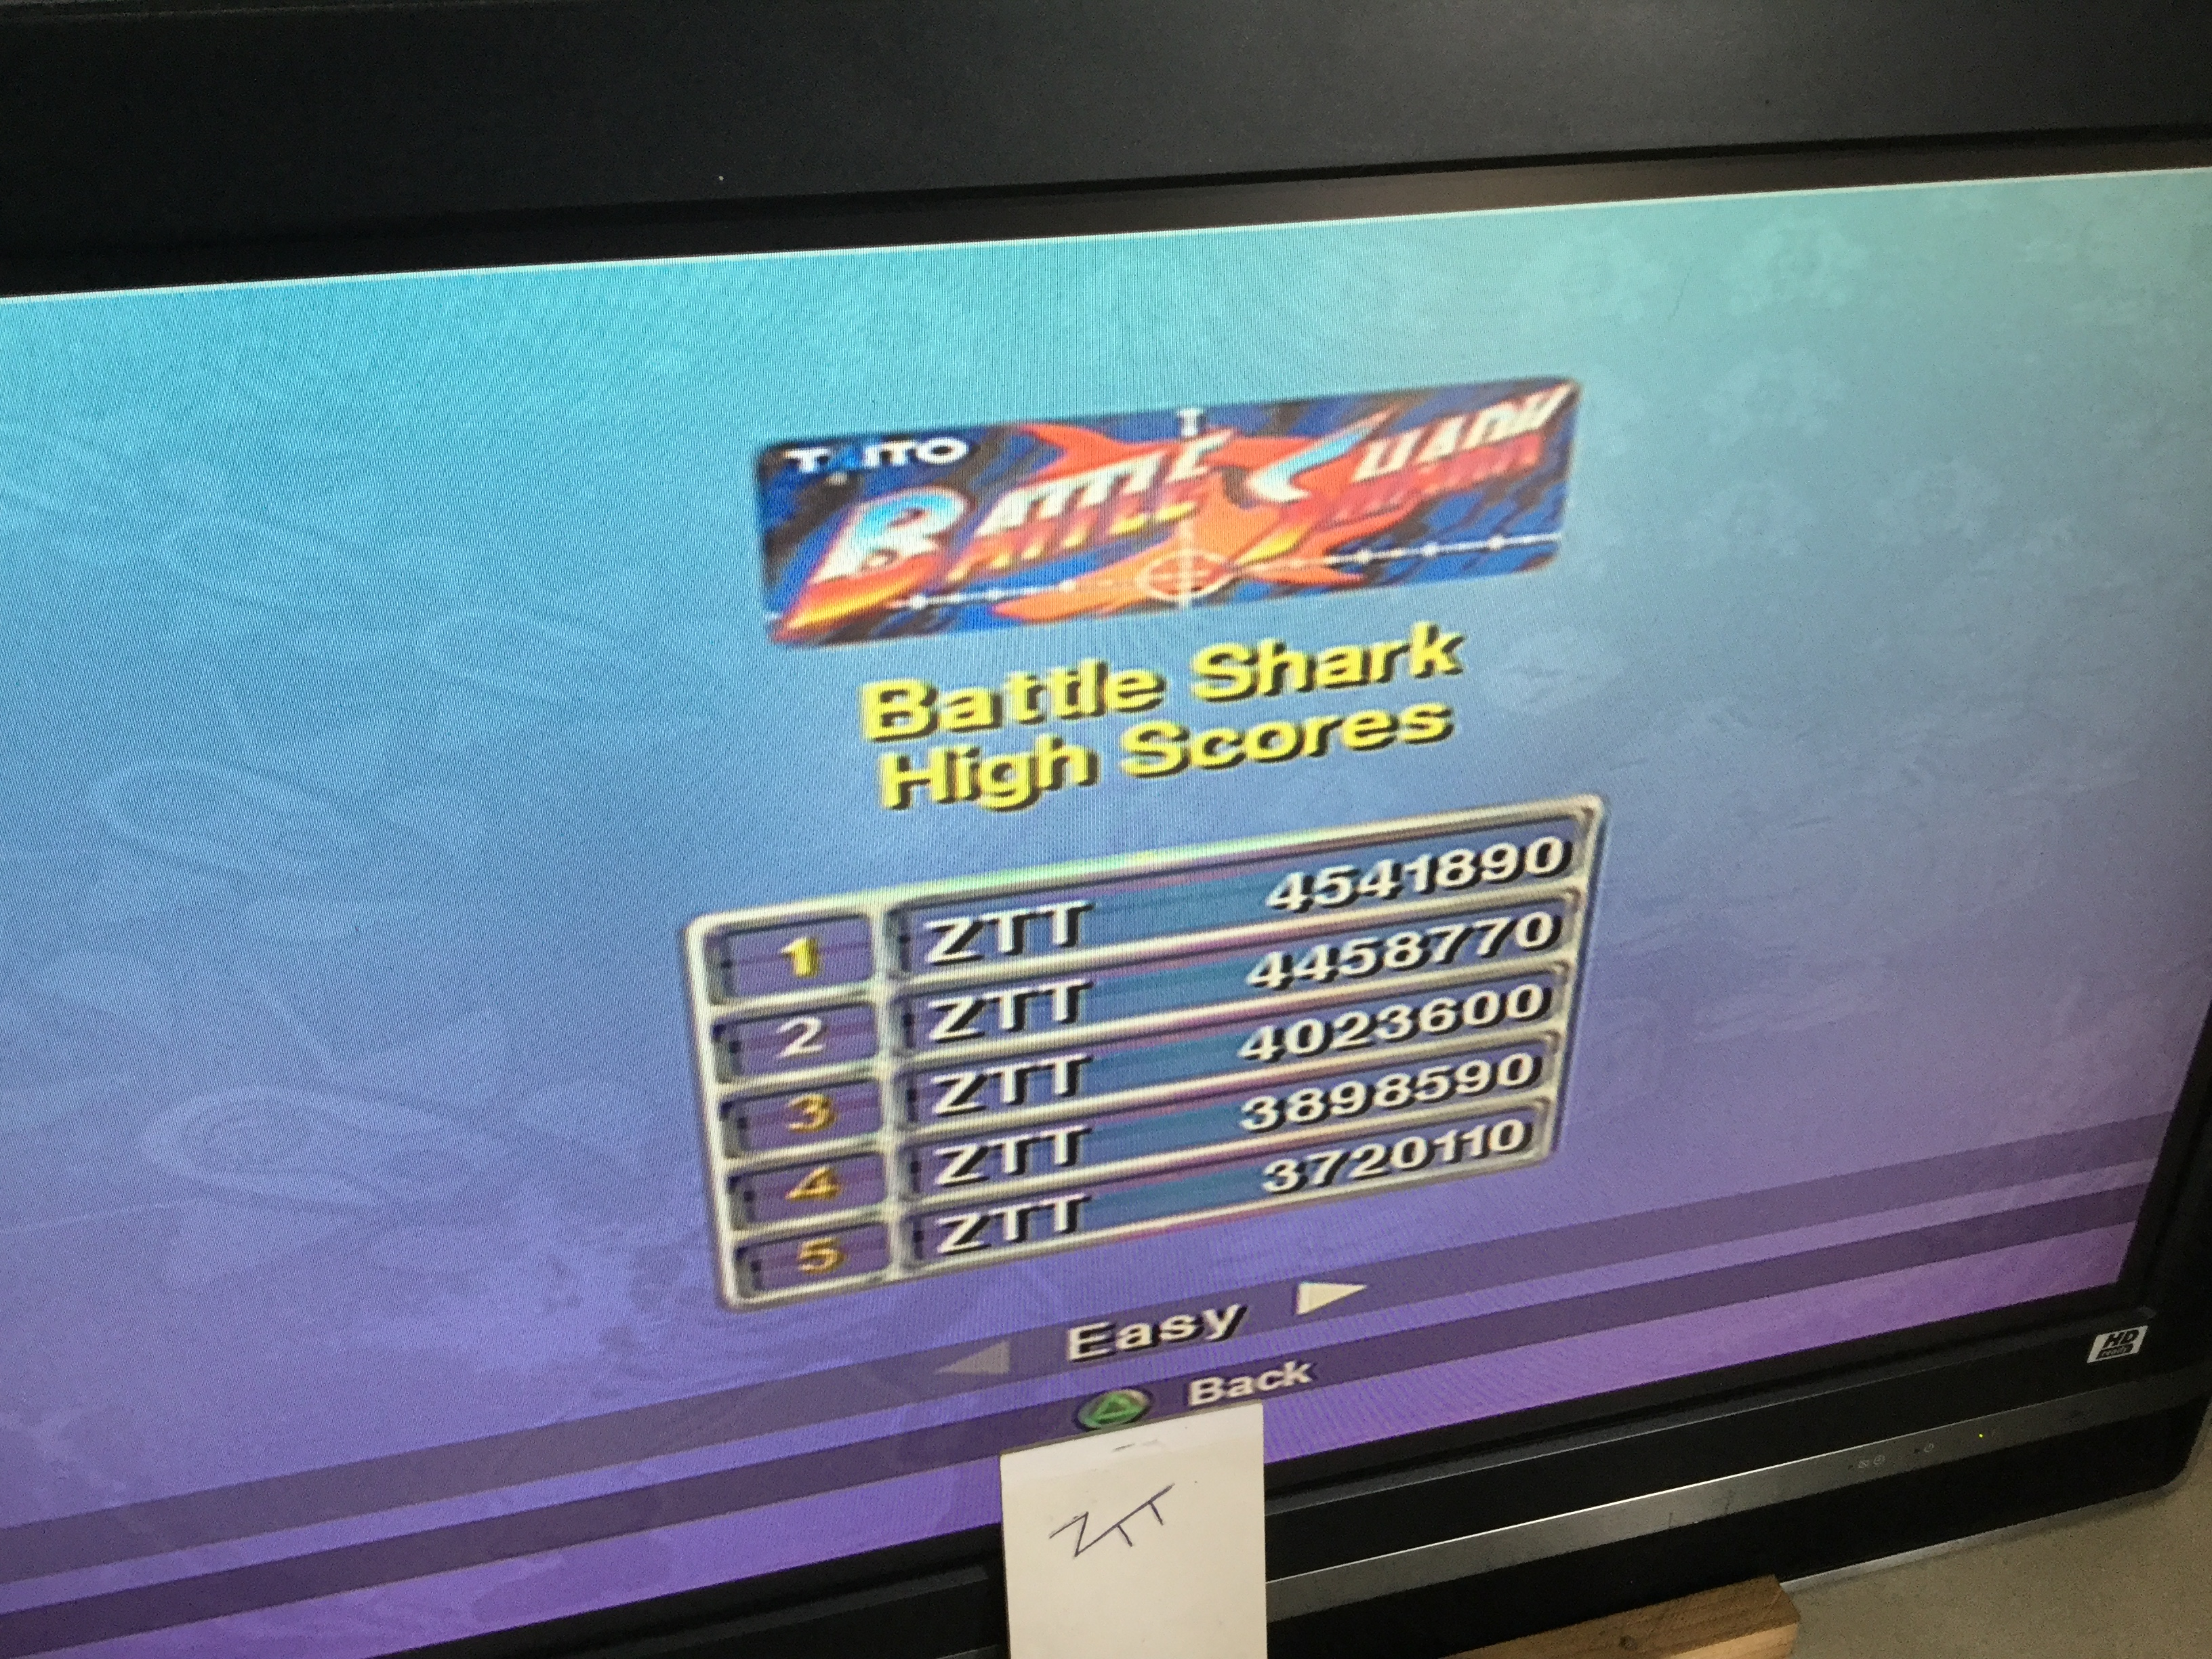 Frankie: Taito Legends: Battle Shark (Playstation 2) 4,541,890 points on 2018-03-17 06:09:33